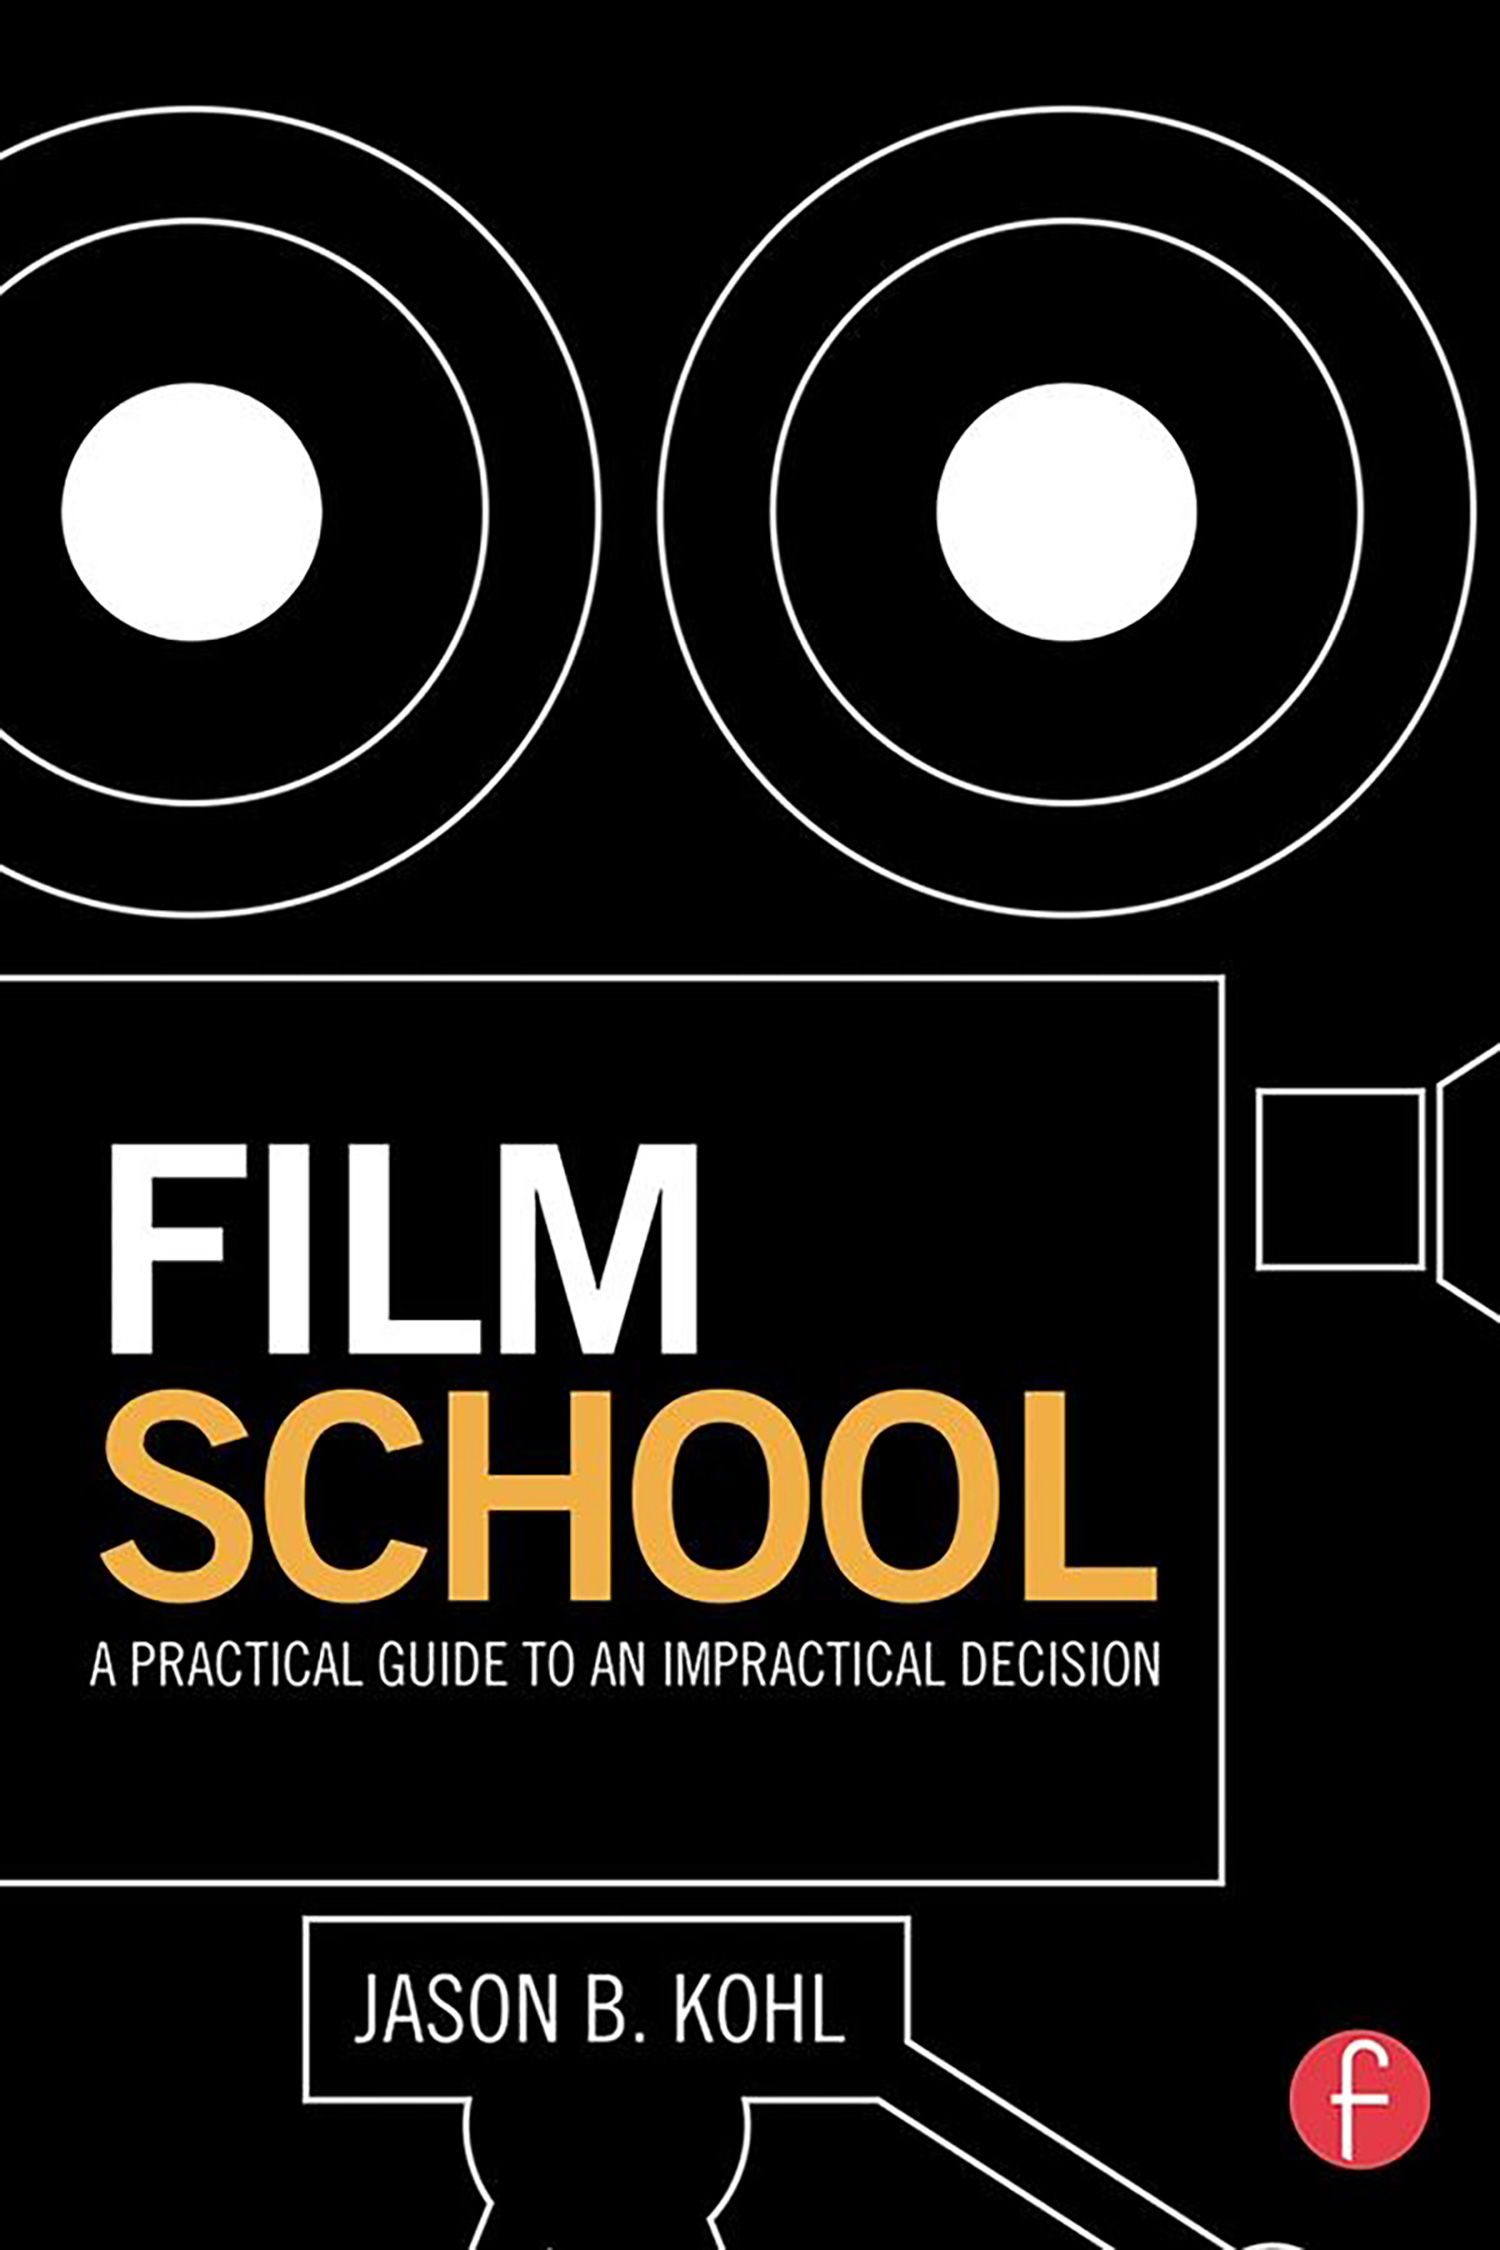 film_school_a_practical_guide_to_an_impractical_decision_jason_b_kohl_01